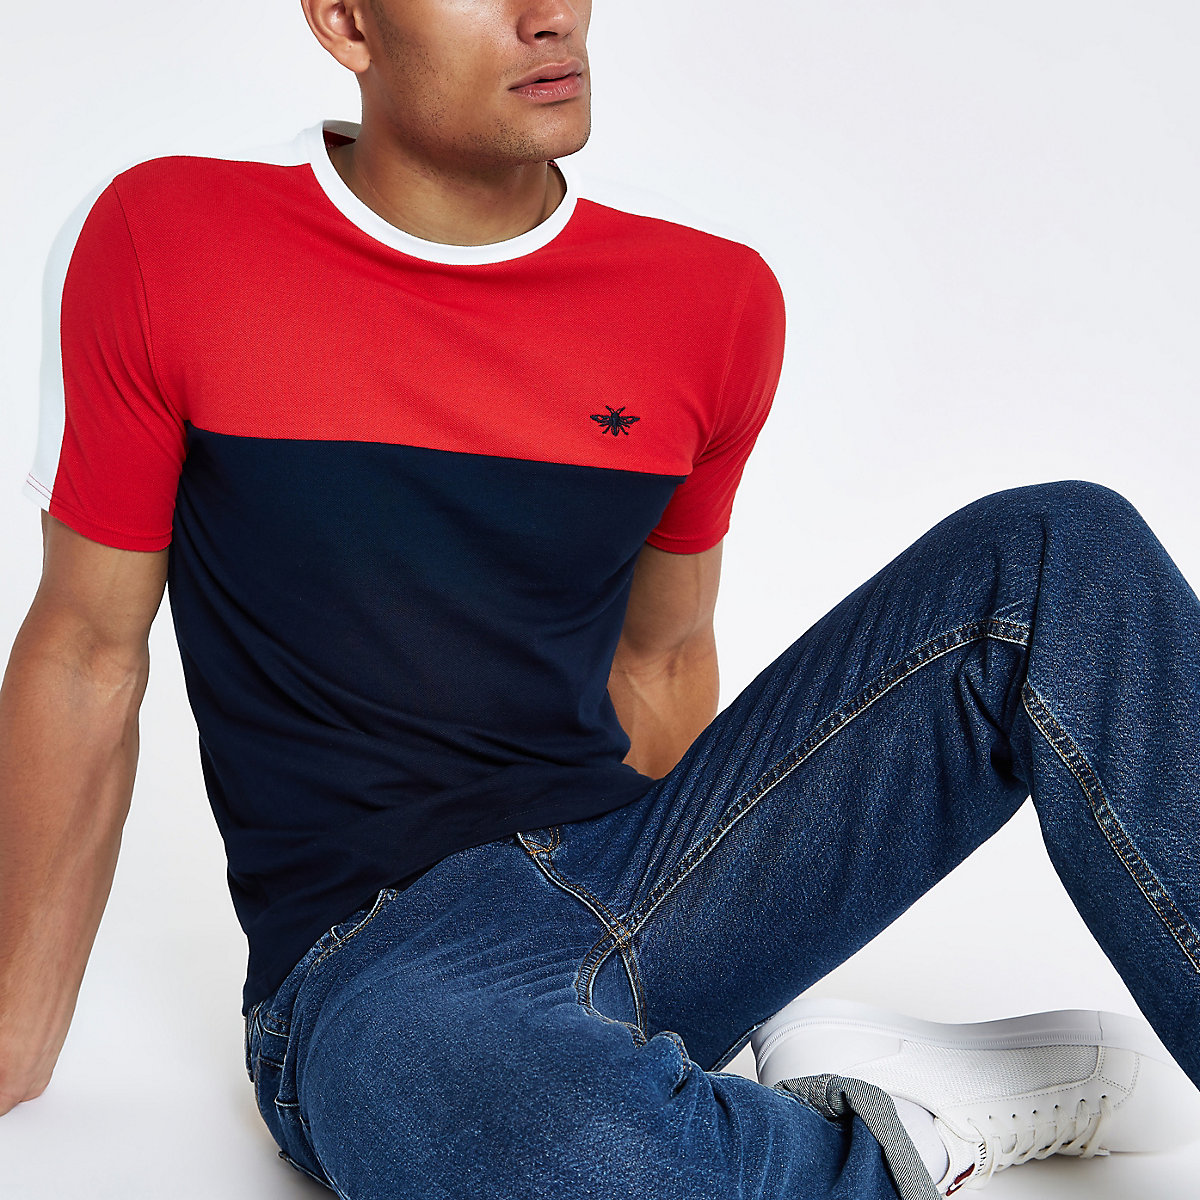 Navy muscle fit color block T-shirt